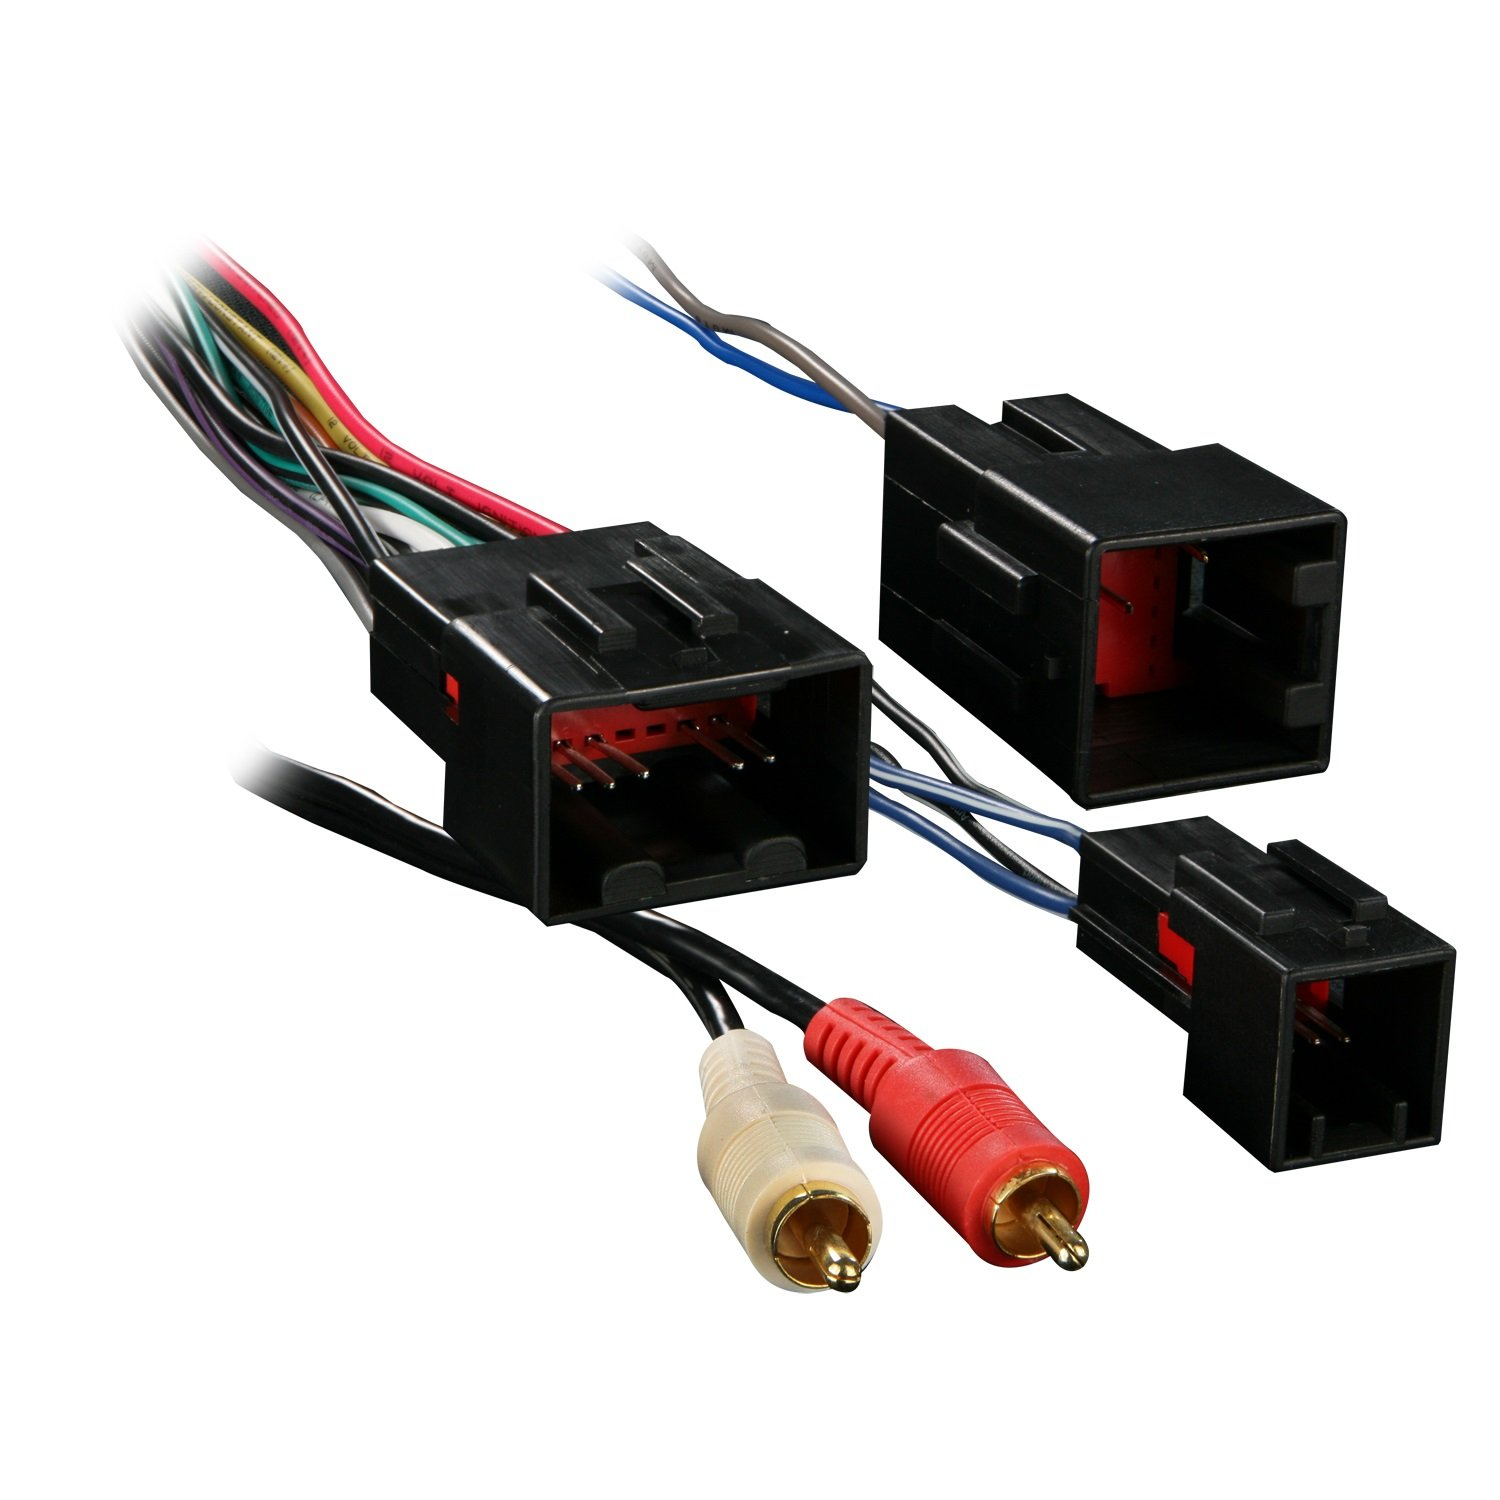 dayton single phase contactor wiring diagram with Electric Motors Wiring Diagram Doerr on Carrier Start Capacitor Wiring Diagram in addition Mag ic Contactors Wiring Diagram Book Wiring Diagrams further Watch as well Forward Reverse Electric Motor Wiring Diagram moreover 12 Lead Motor Wiring Diagram.